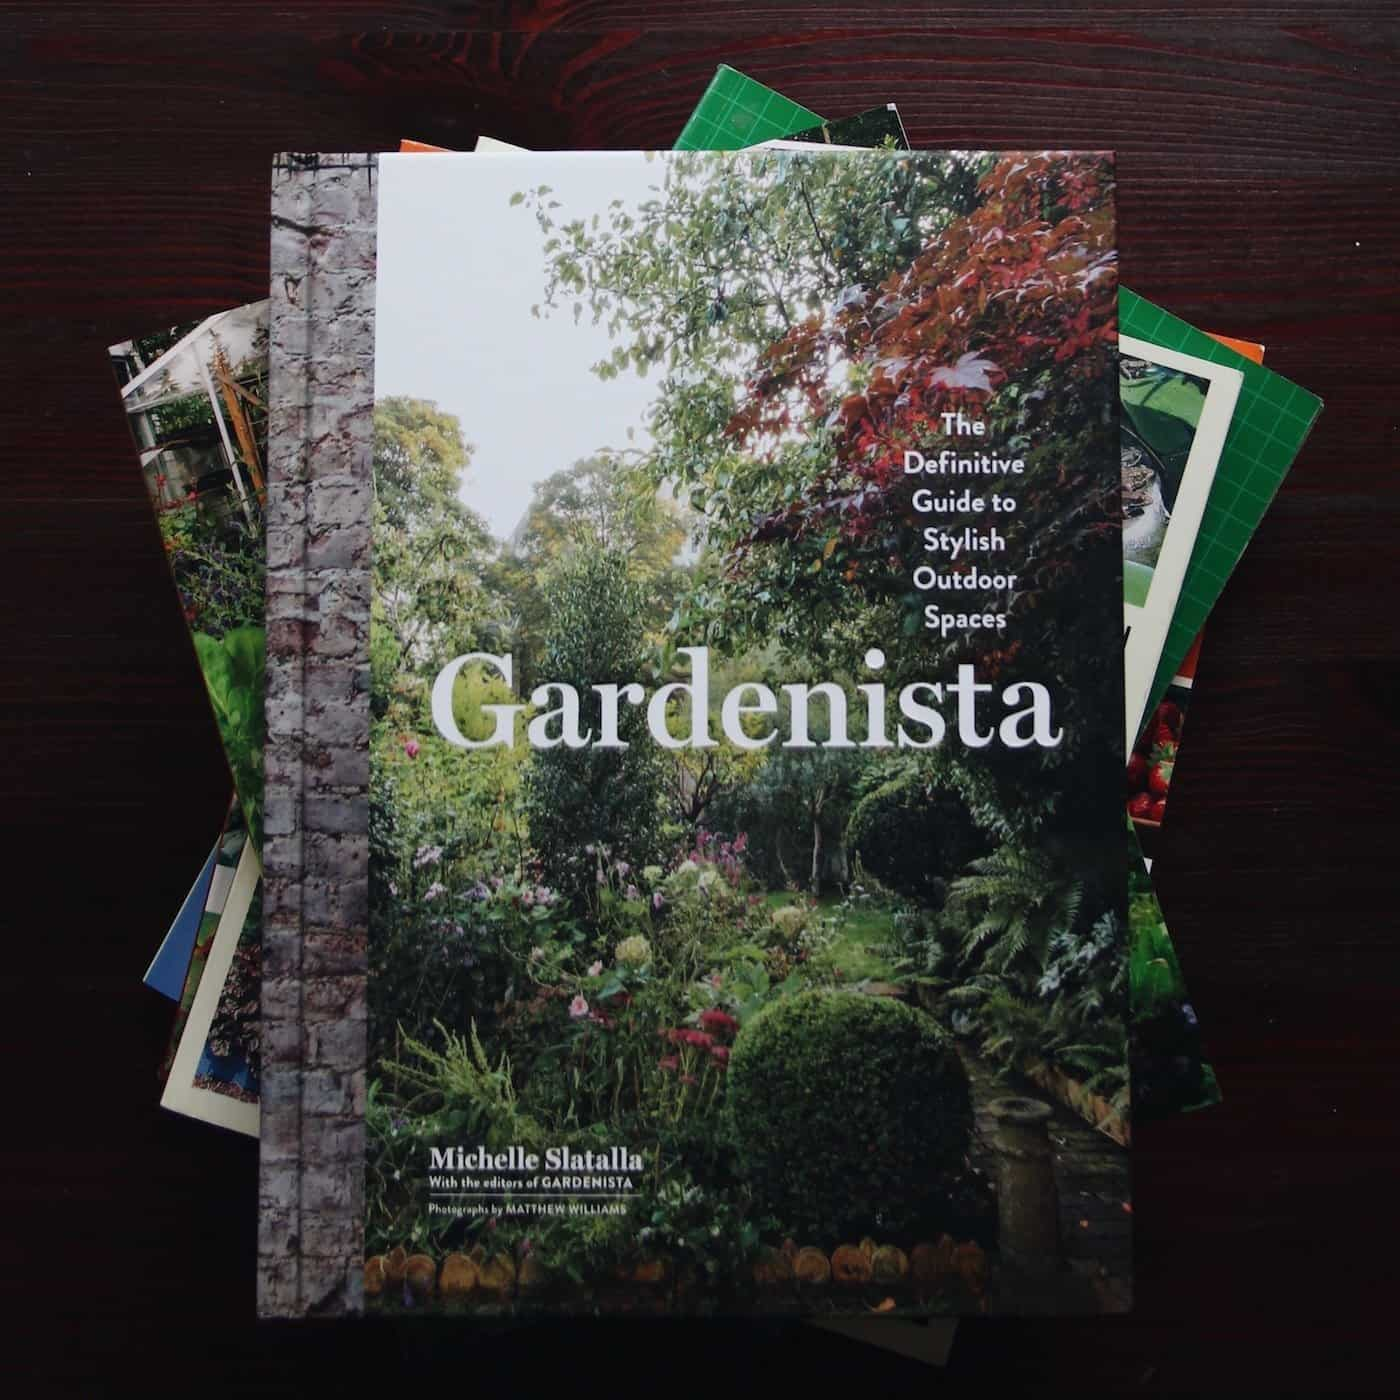 Garden Library Favourites My List of Gardening Books